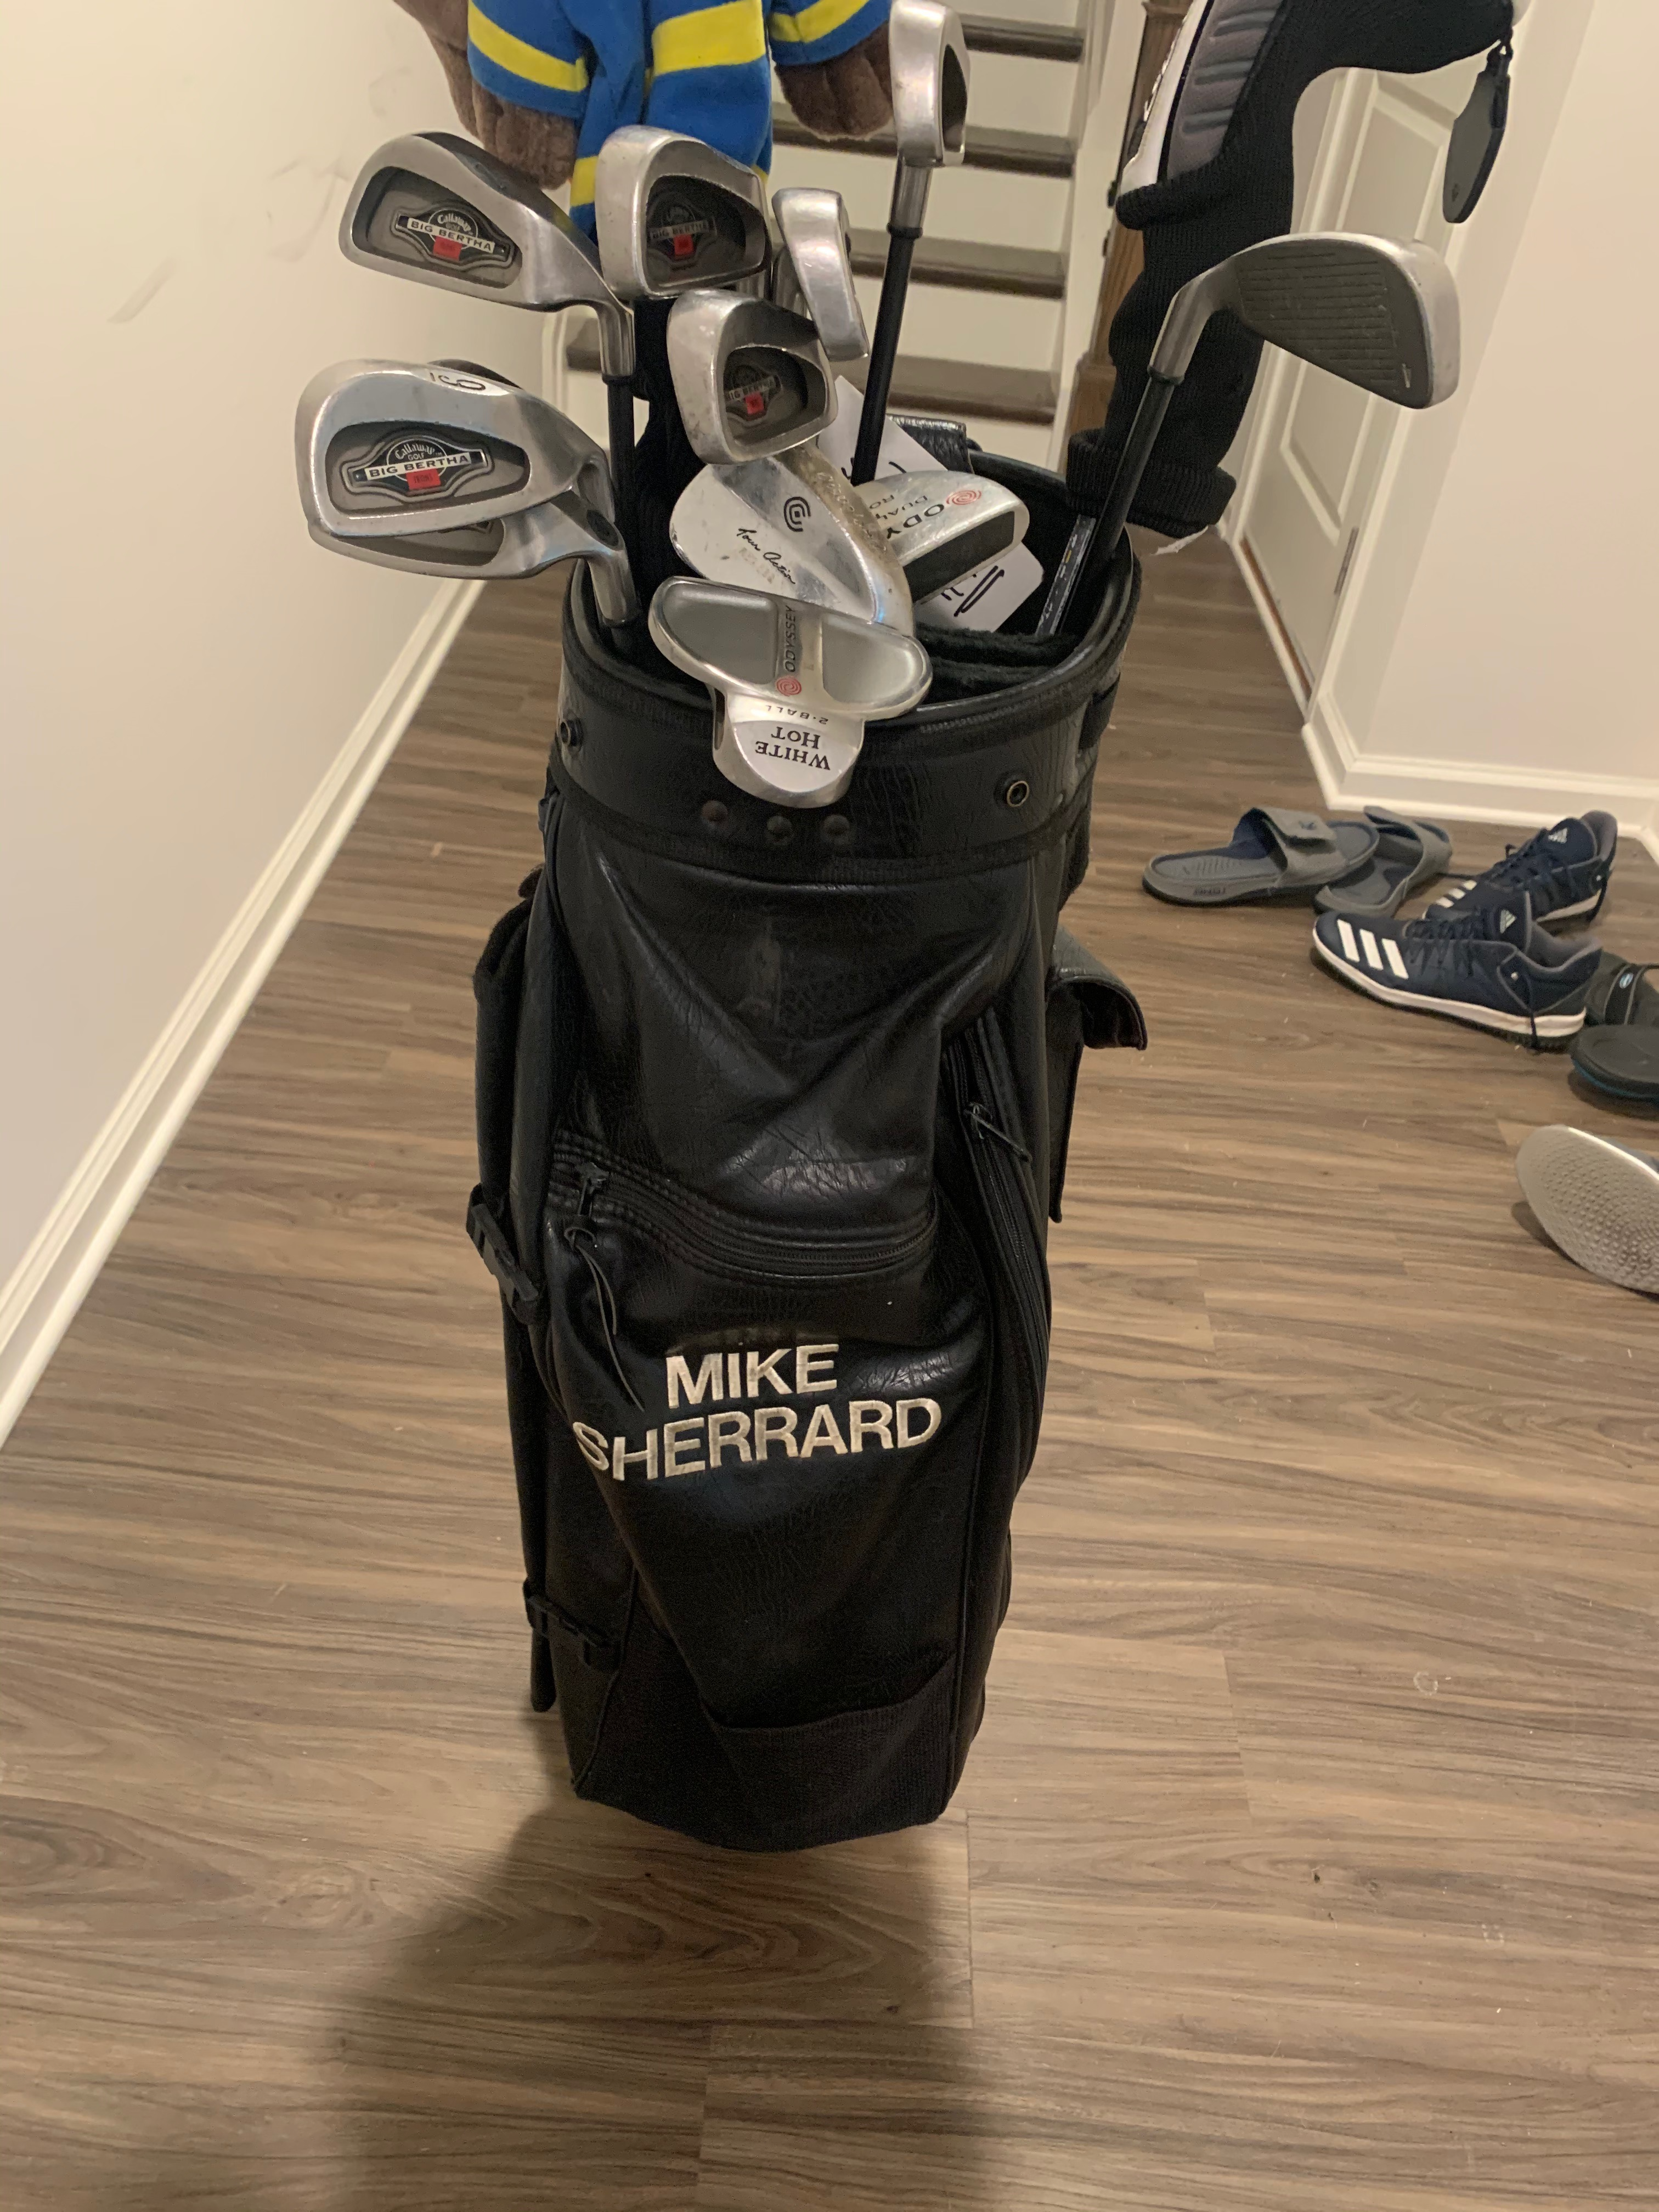 Mike Sherrard's Golf Set